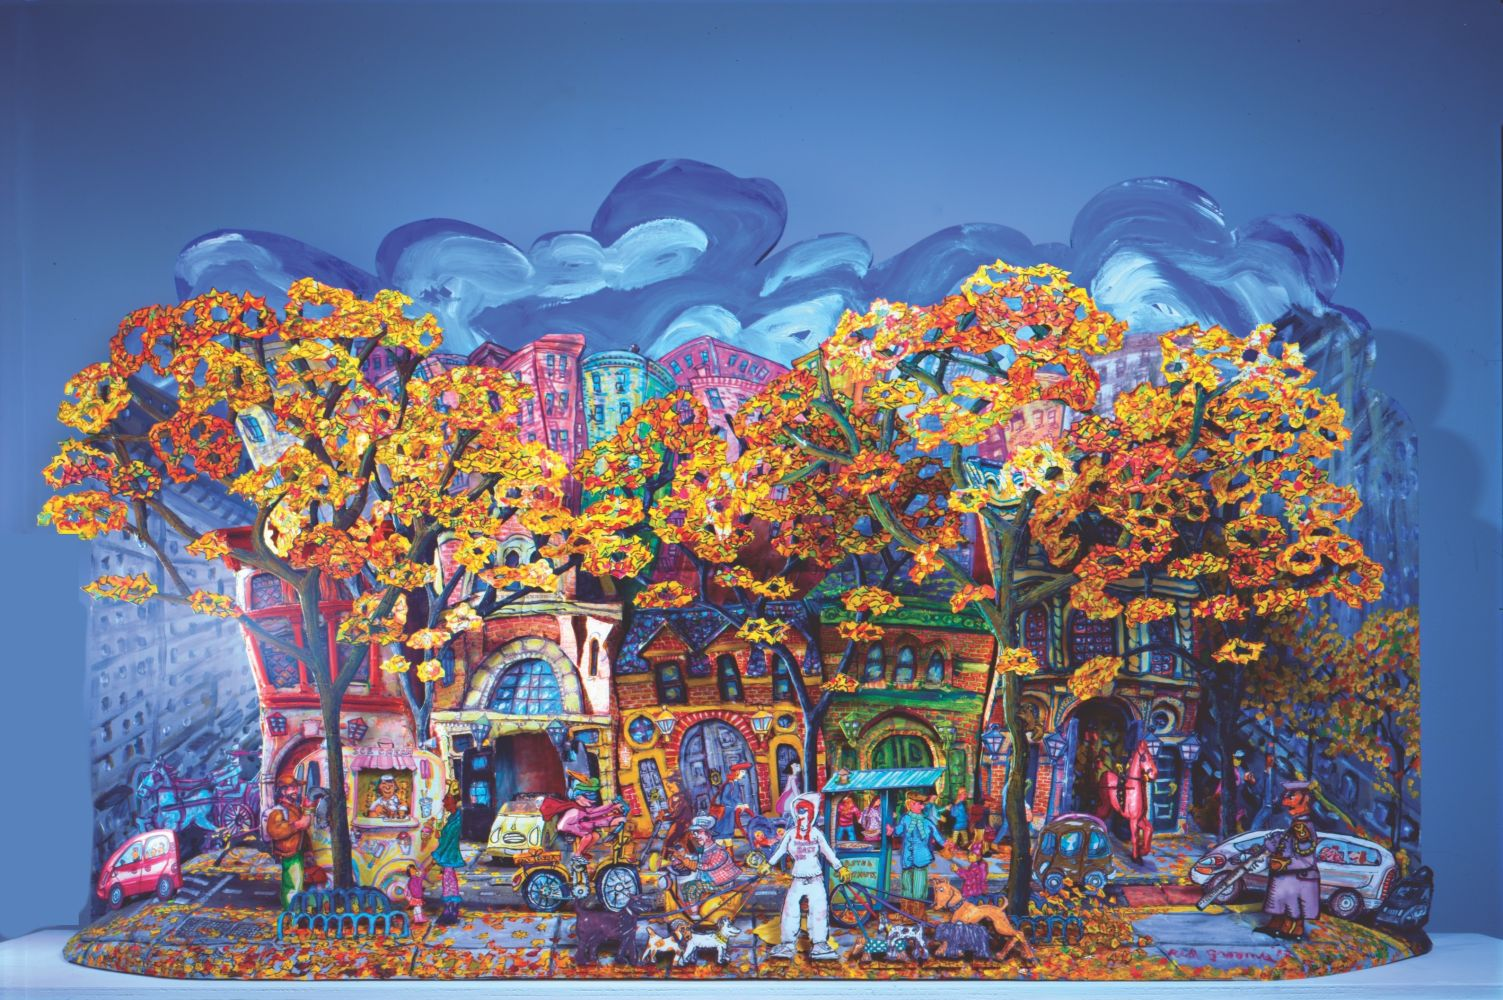 Red Grooms artwork depicting a colorful street view of New York City in autumn using exaggerated perspective.